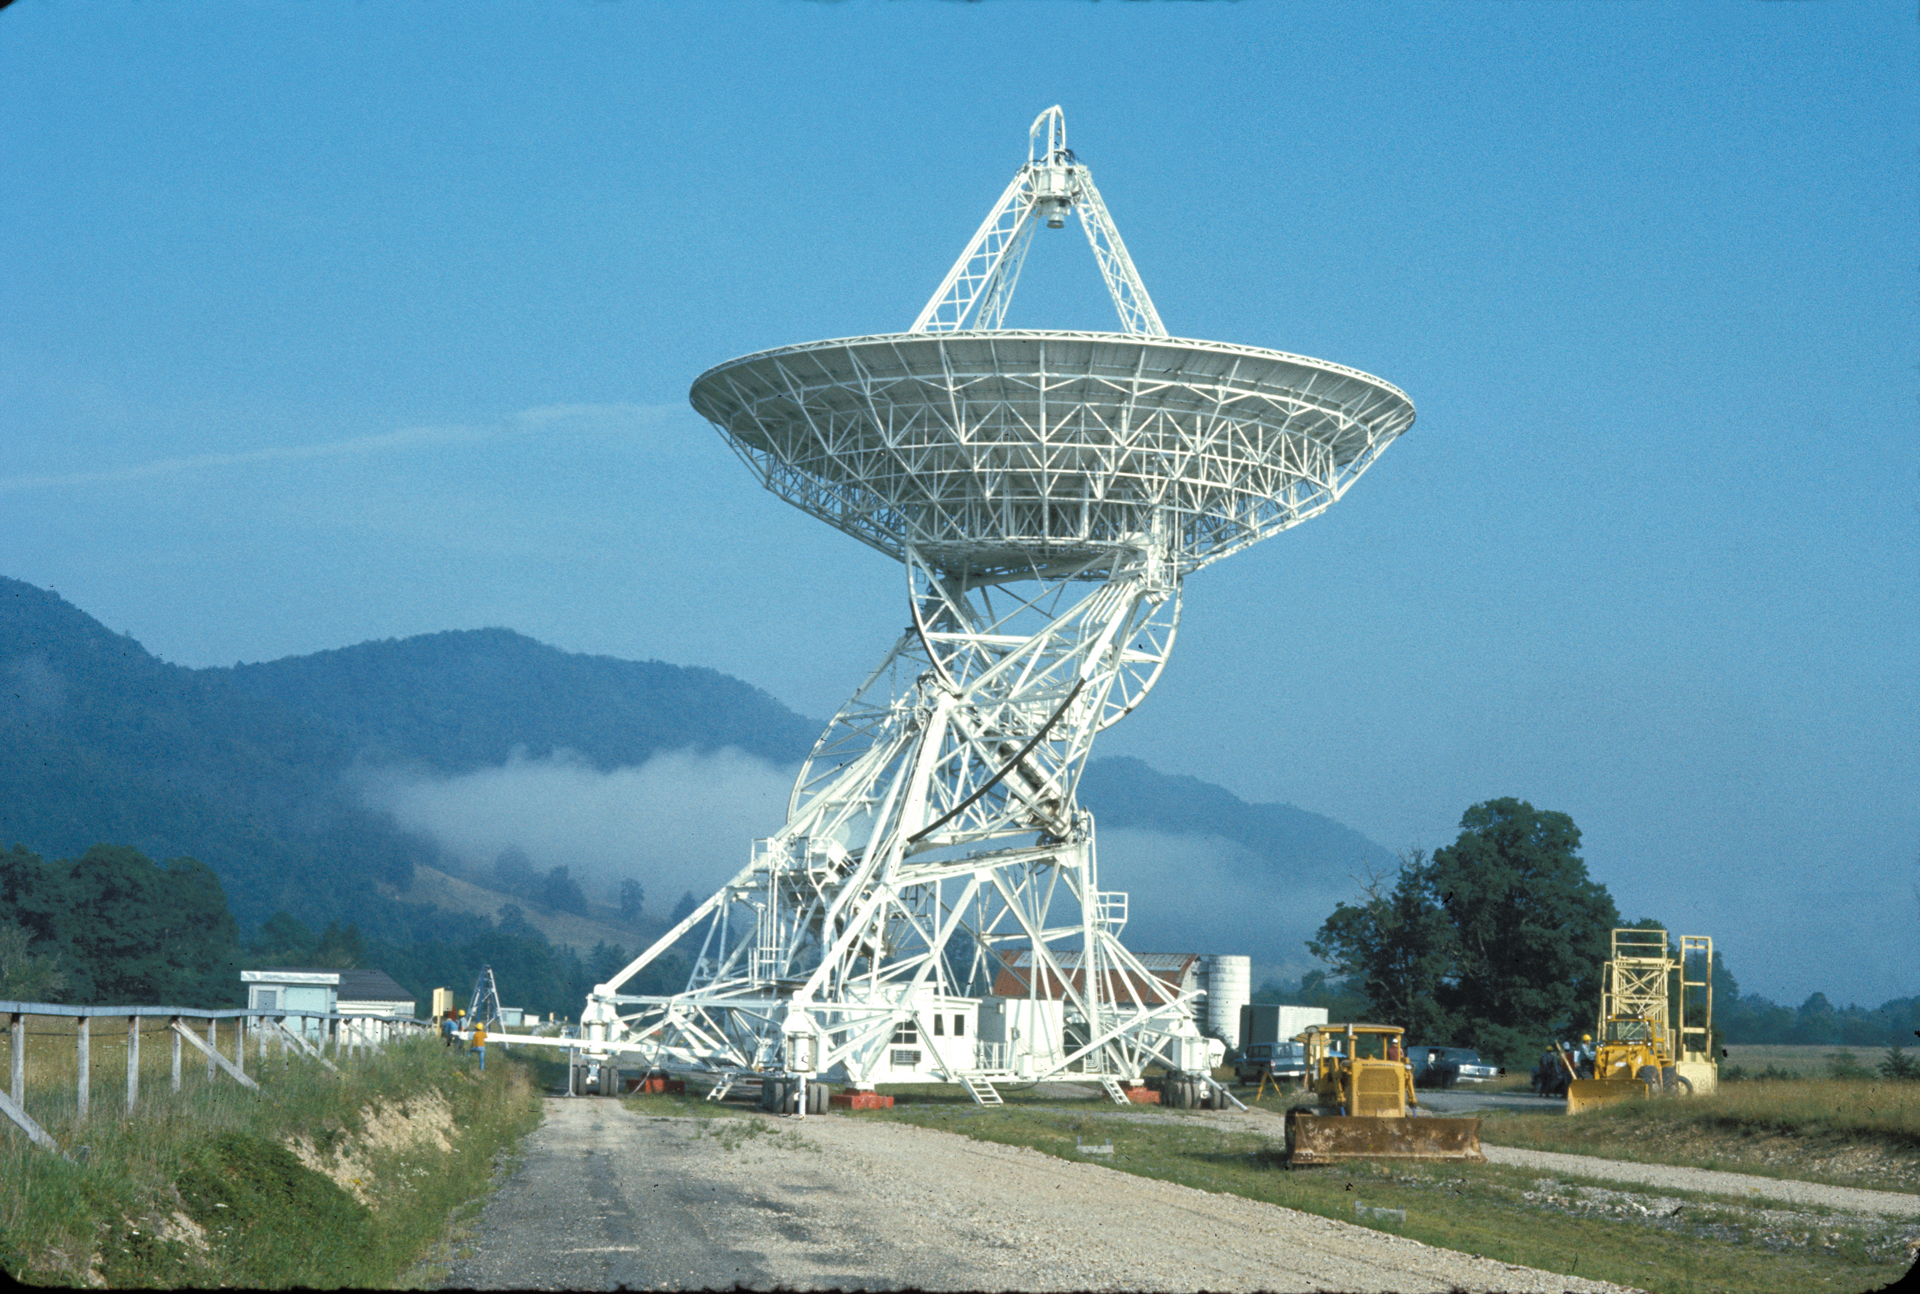 The second 85-foot telescope of Green Bank Observatory